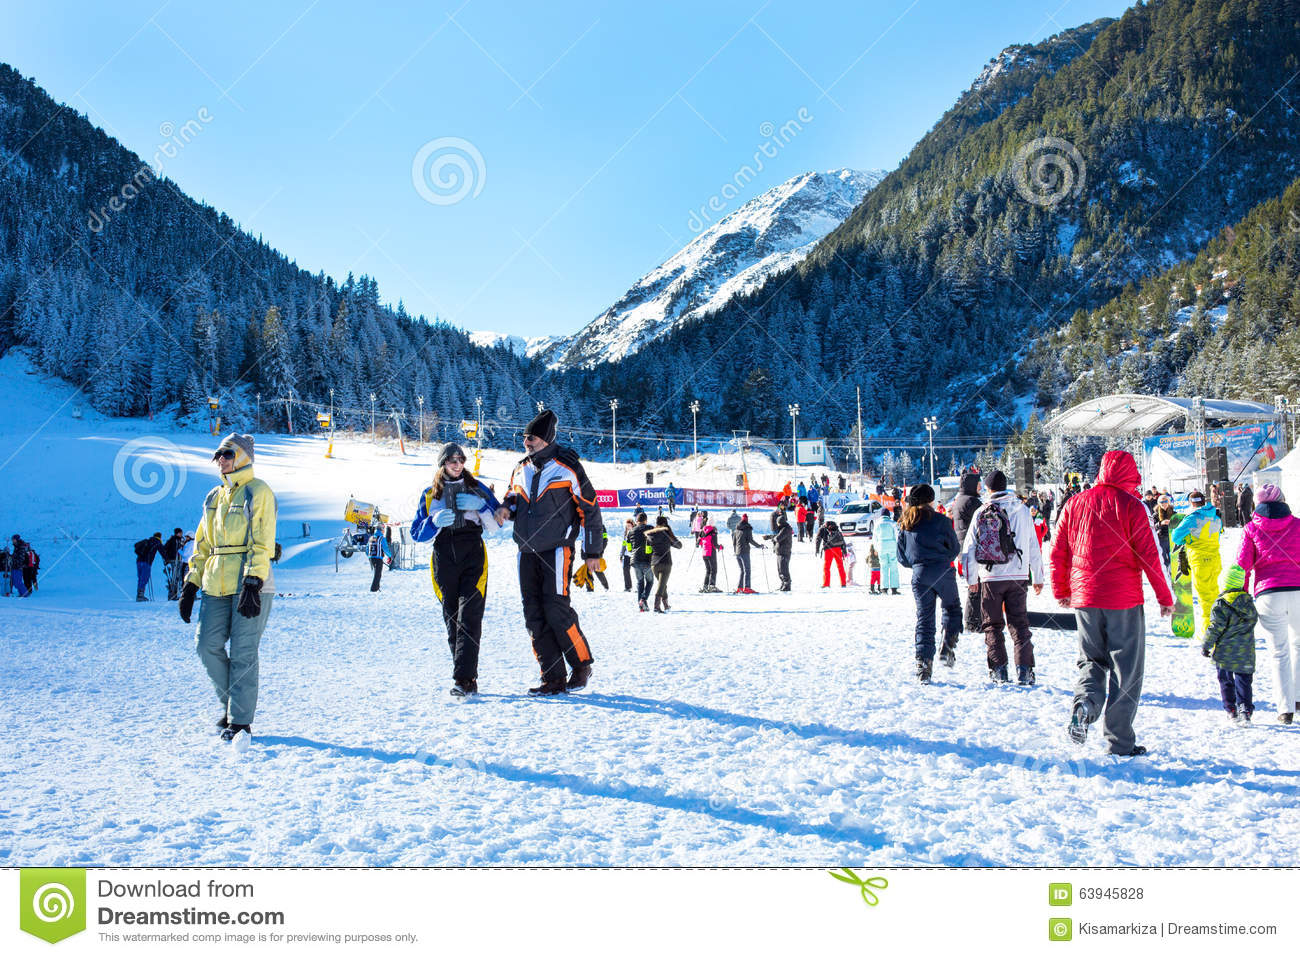 Editorial Stock Photo Ski Resort Bansko Bulgaria People Mountains December Pistes Mountain Pine Trees Slope Walking Skiing Image63945828 on cabin plans